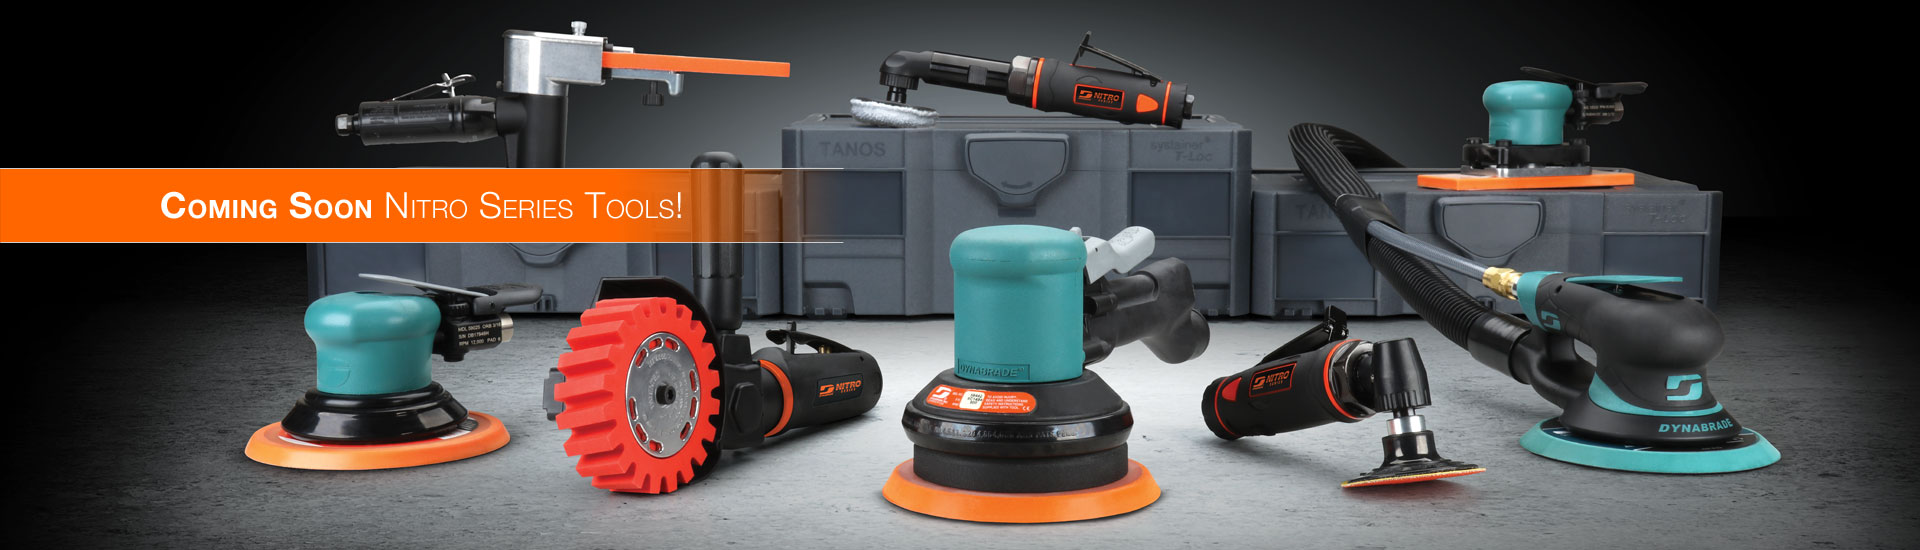 New Nitro-Series Tools From Dynabrade Coming Soon!